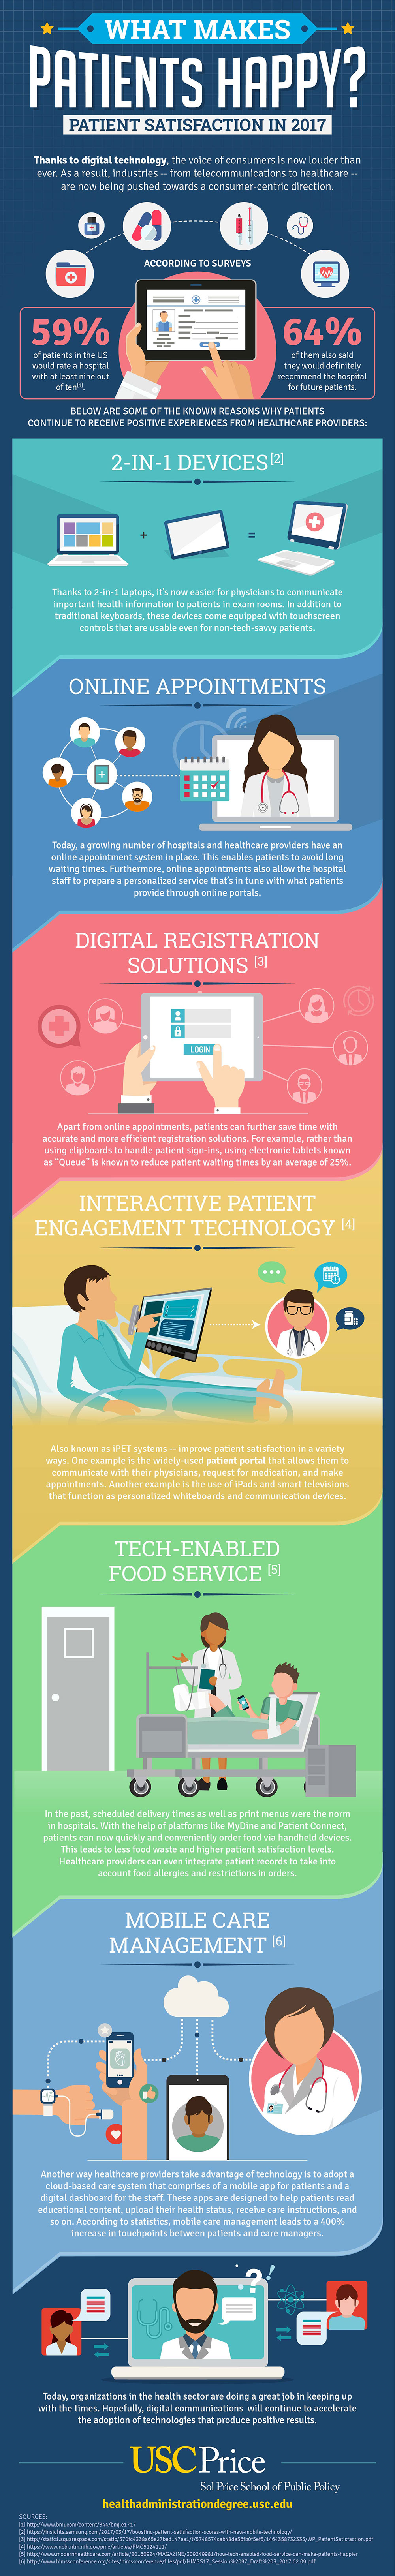 An infographic about digital technology's impact on patient satisfaction by USC Sol Price School of Public Policy